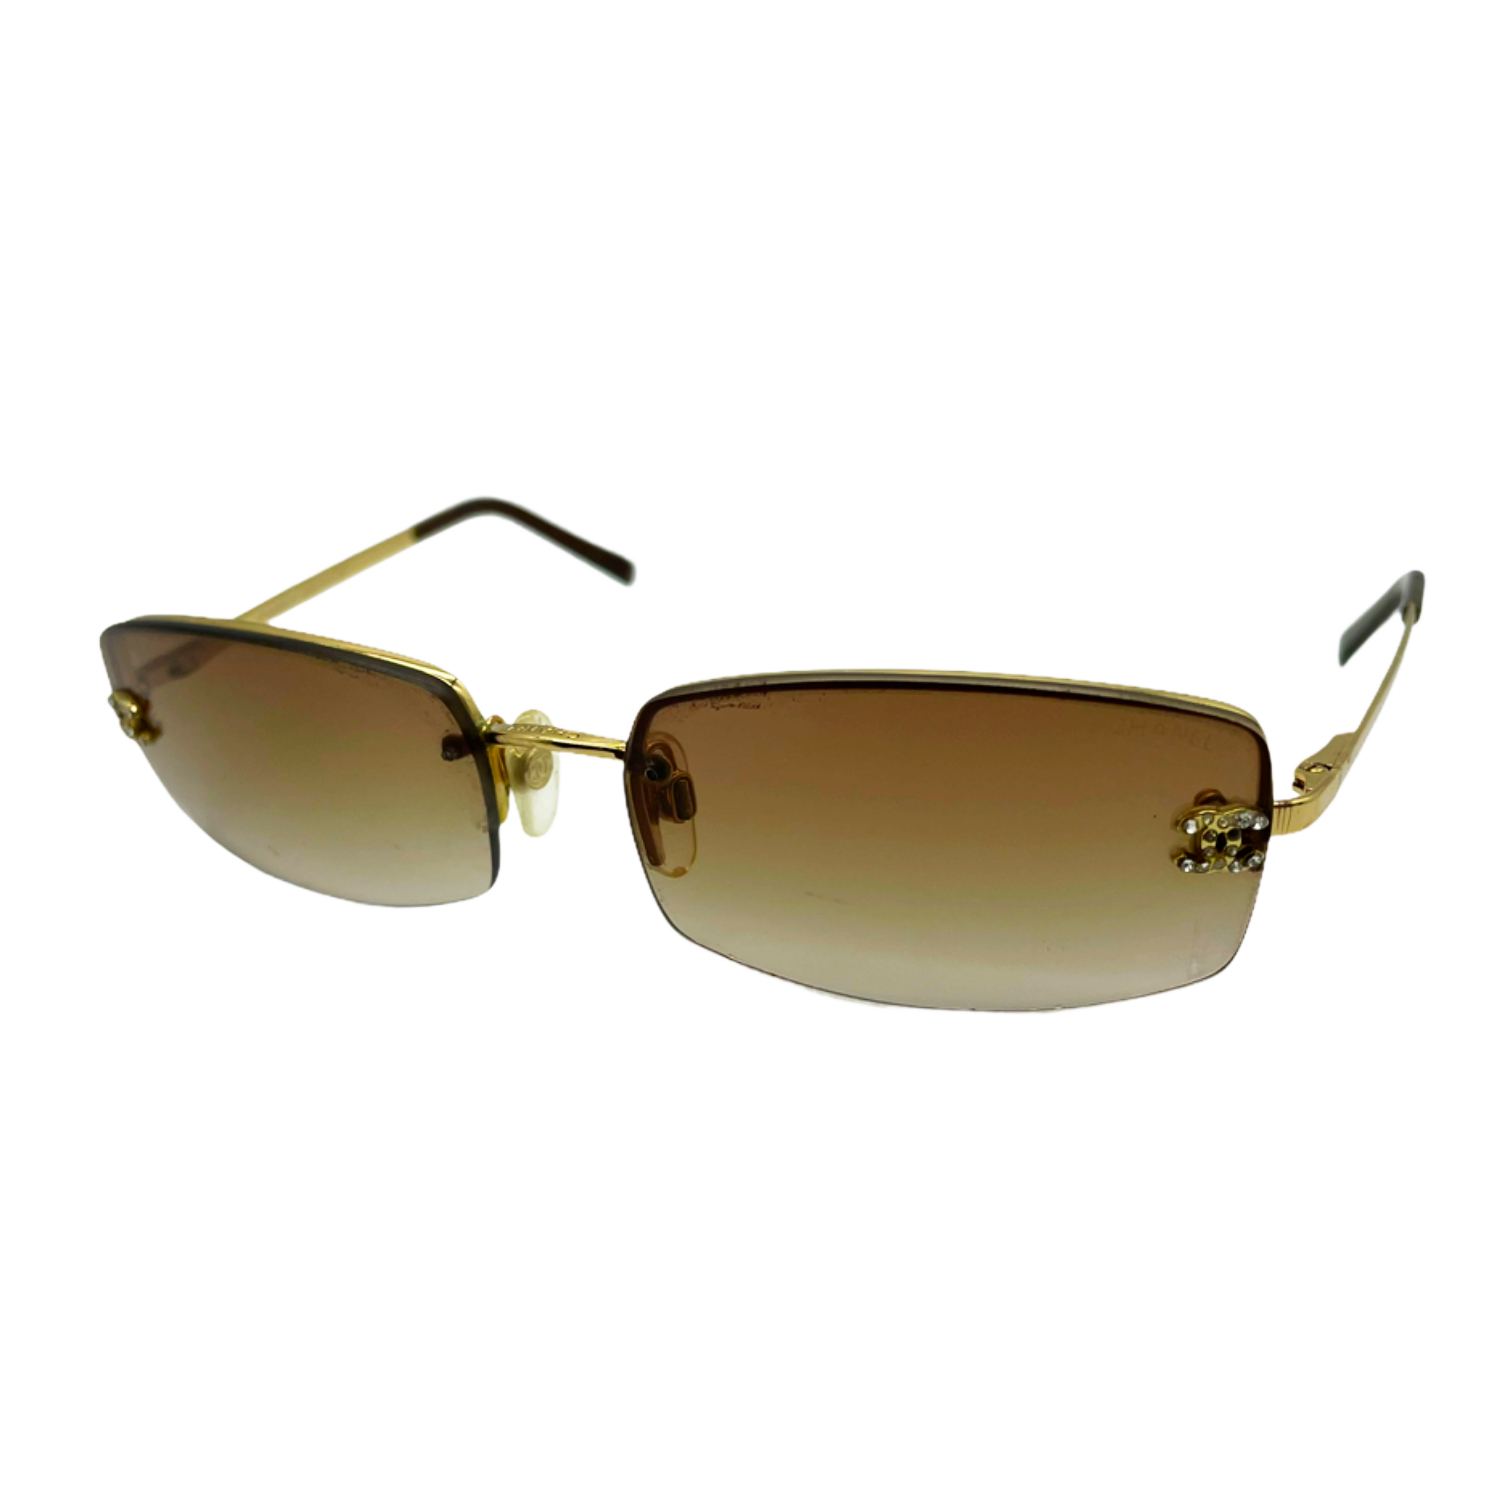 Vintage Chanel Diamante Rimless Sunglasses in Brown and Gold | NITRYL